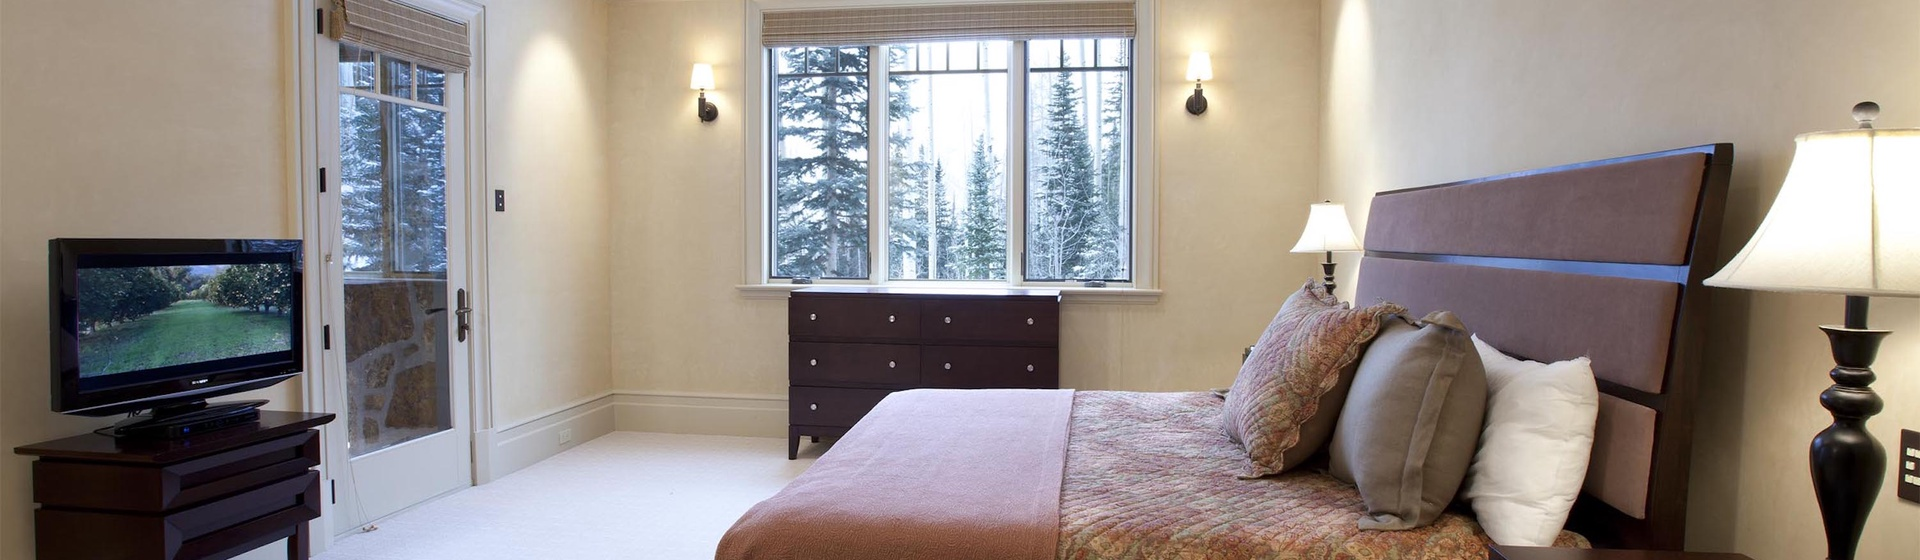 5.16-mountain-village-hood-park-manor-guest-bedroom-e-track.jpg